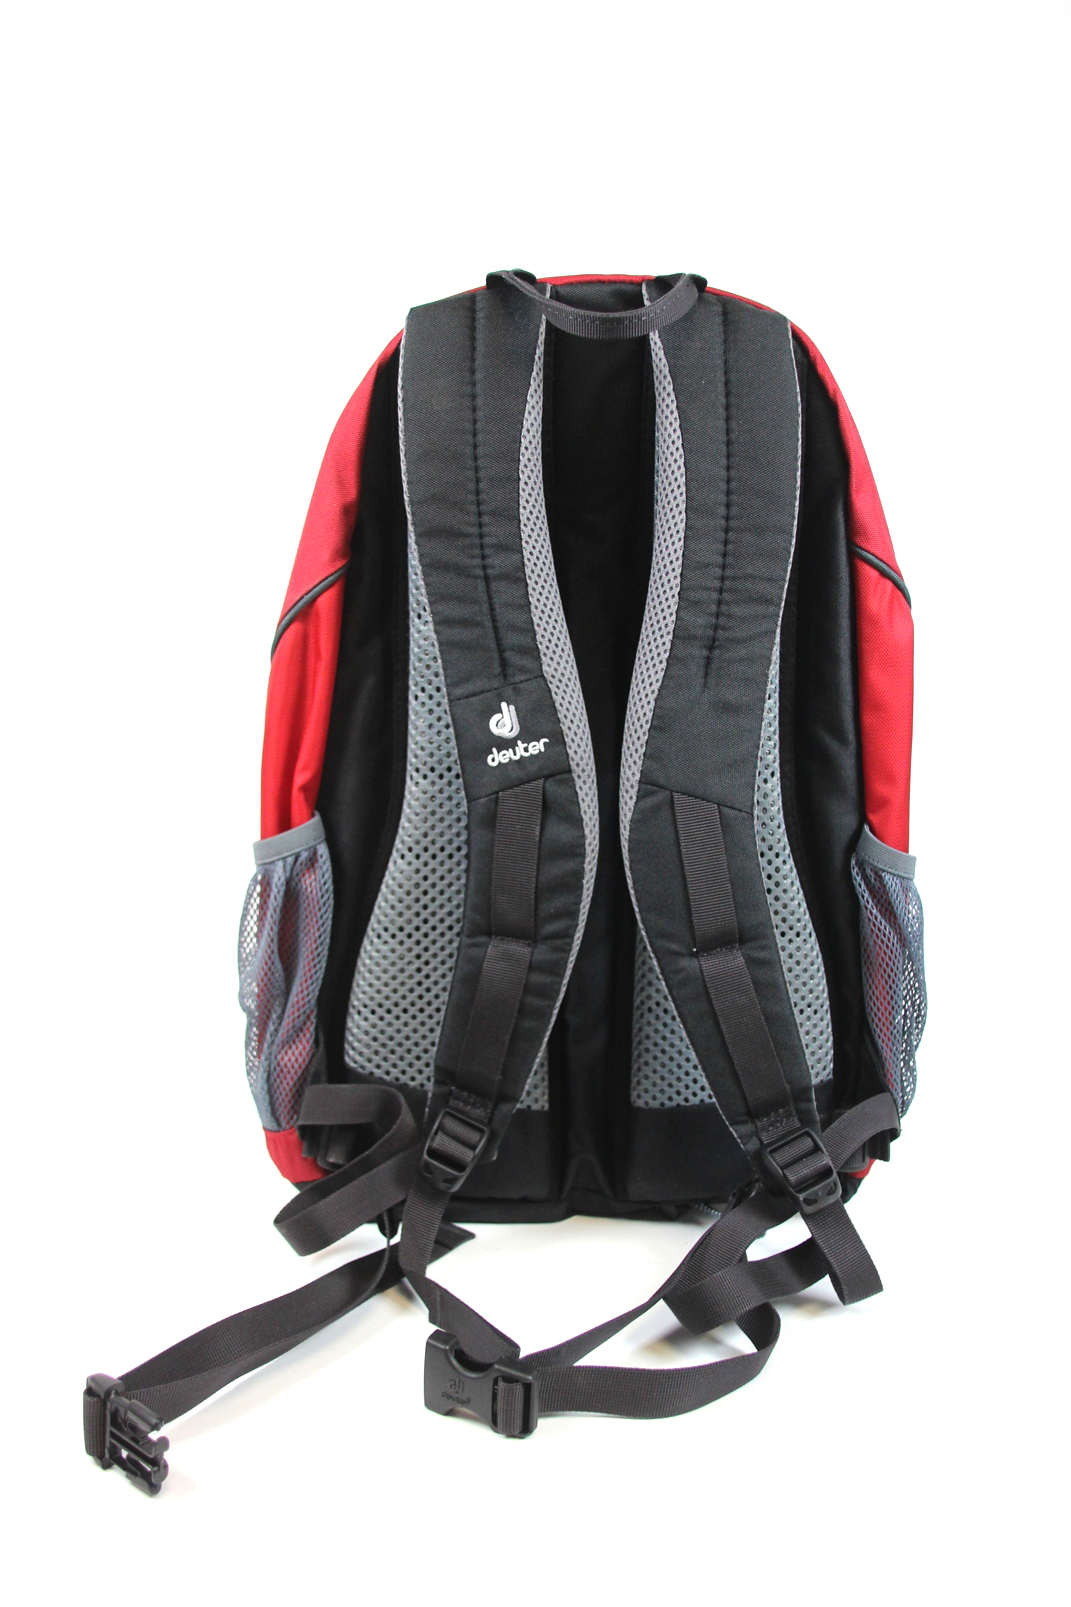 deuter gogo rucksack rot grau 25 l 47x32 cm sport freizeit. Black Bedroom Furniture Sets. Home Design Ideas